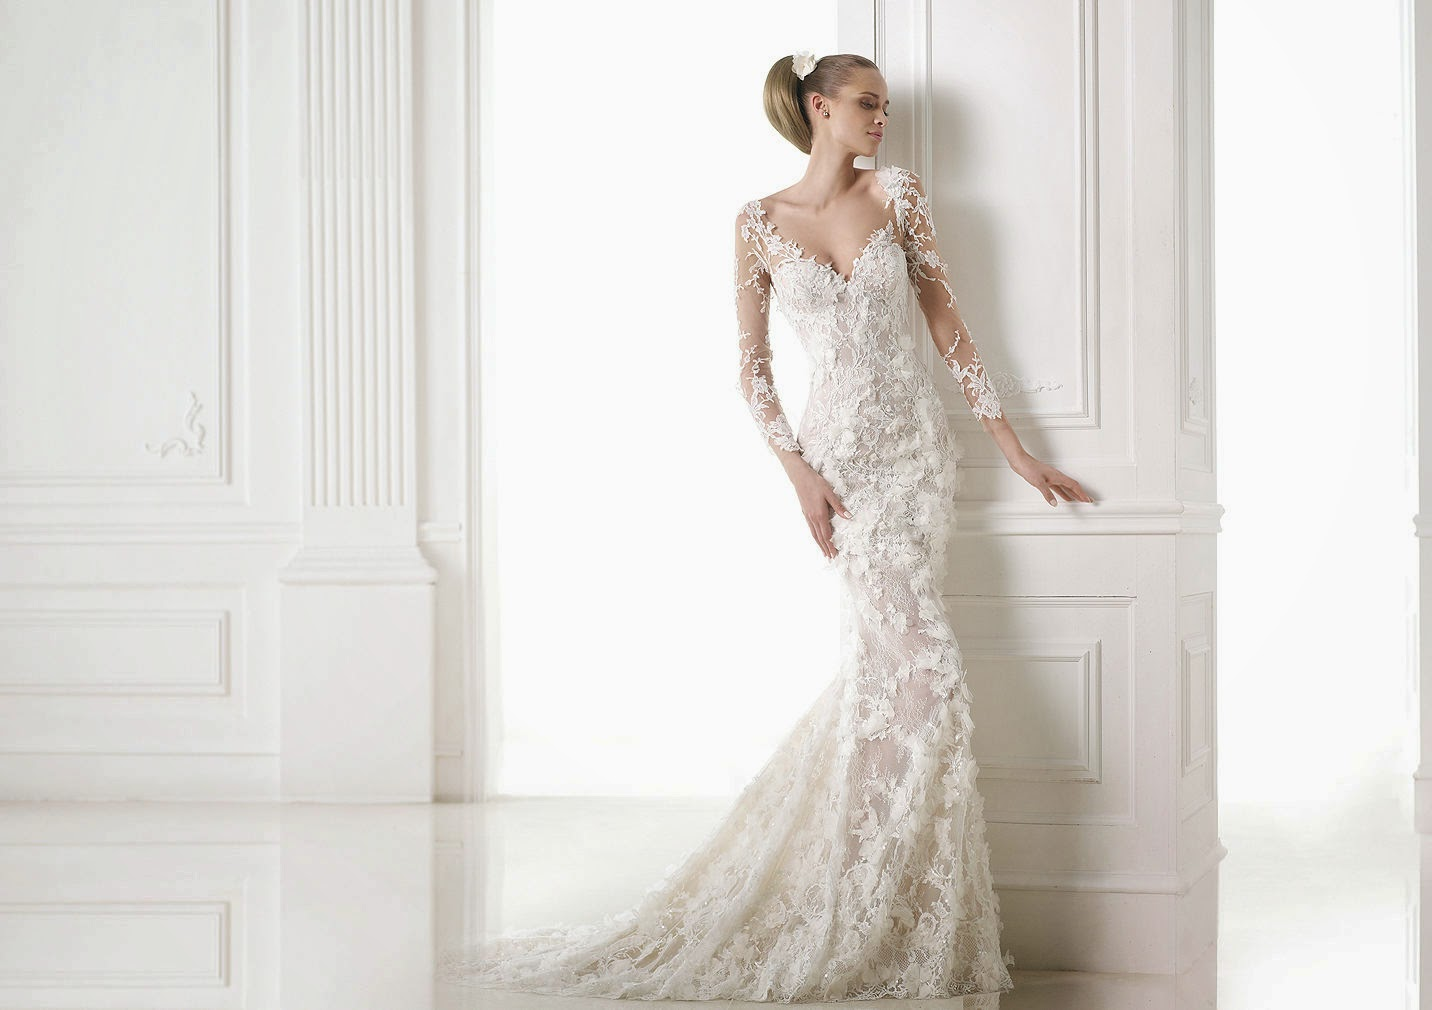 Lace Wedding Gowns: I Am A Woman In Love: 2015 Wedding Dresses: Lace Mermaid